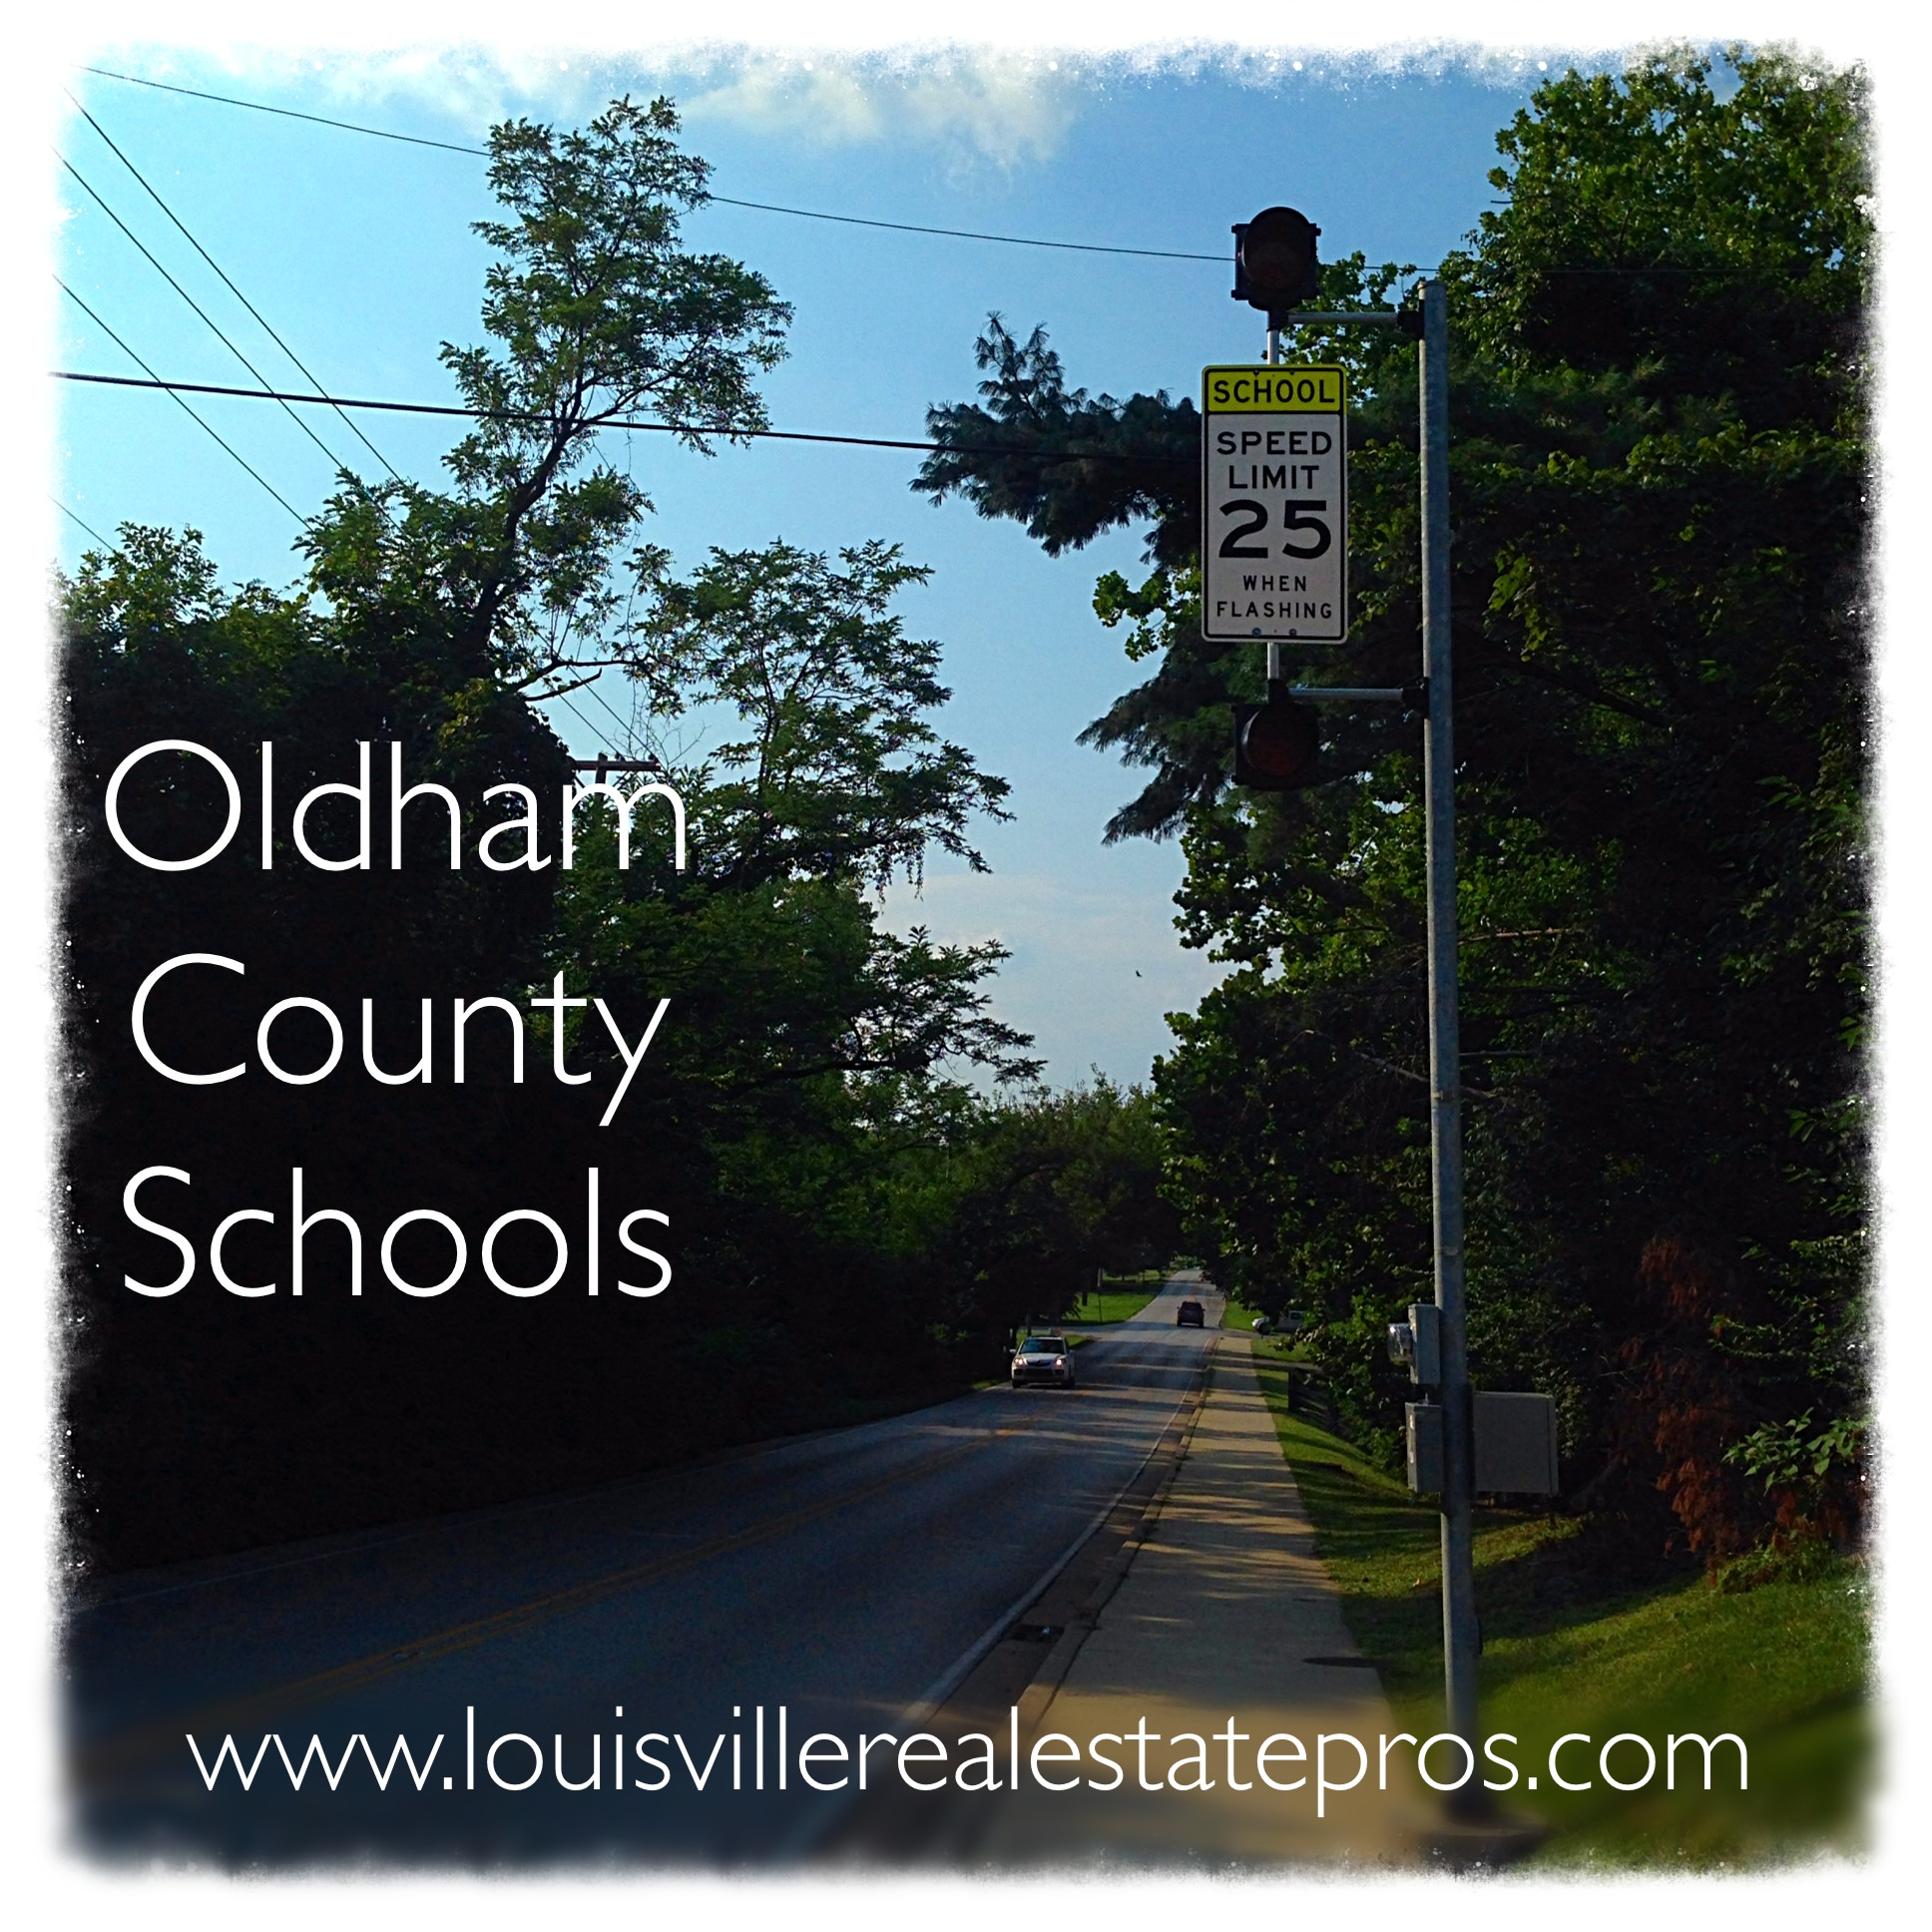 Oldham County Schools: The Best in Kentucky!